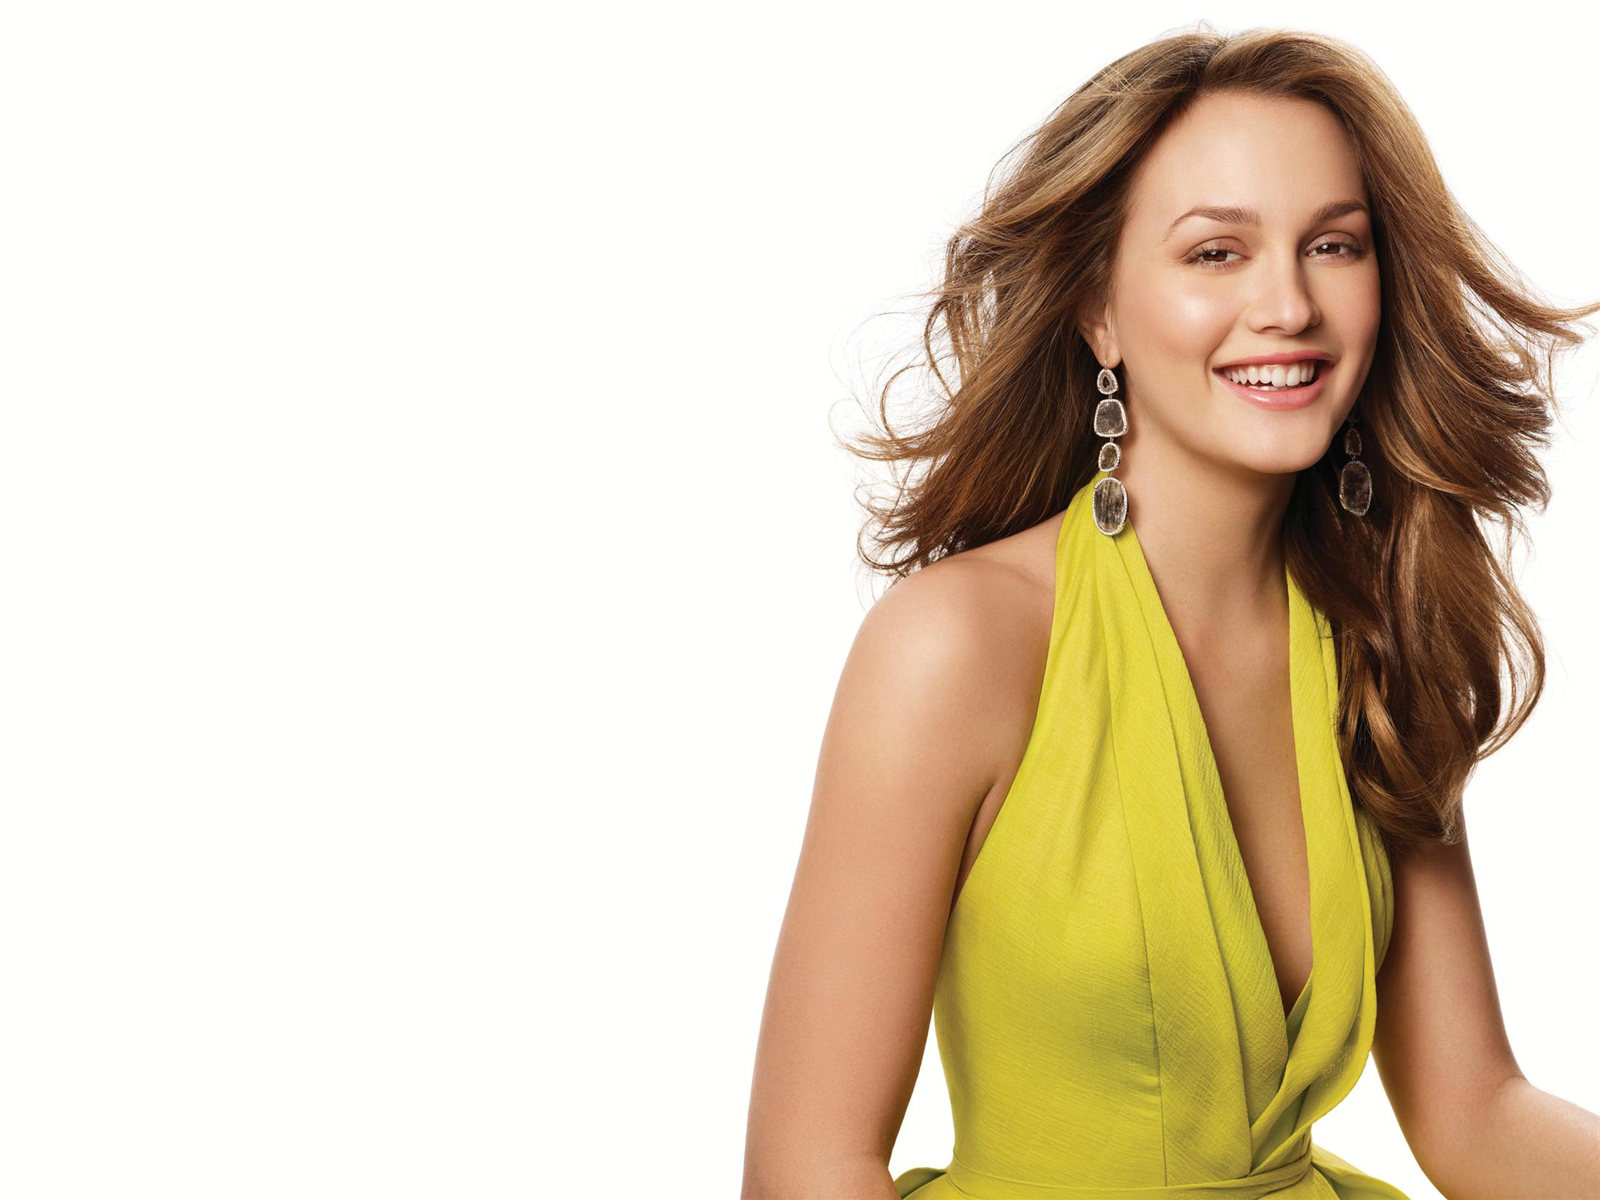 Leighton Meester Beautiful Actress 945.12 Kb